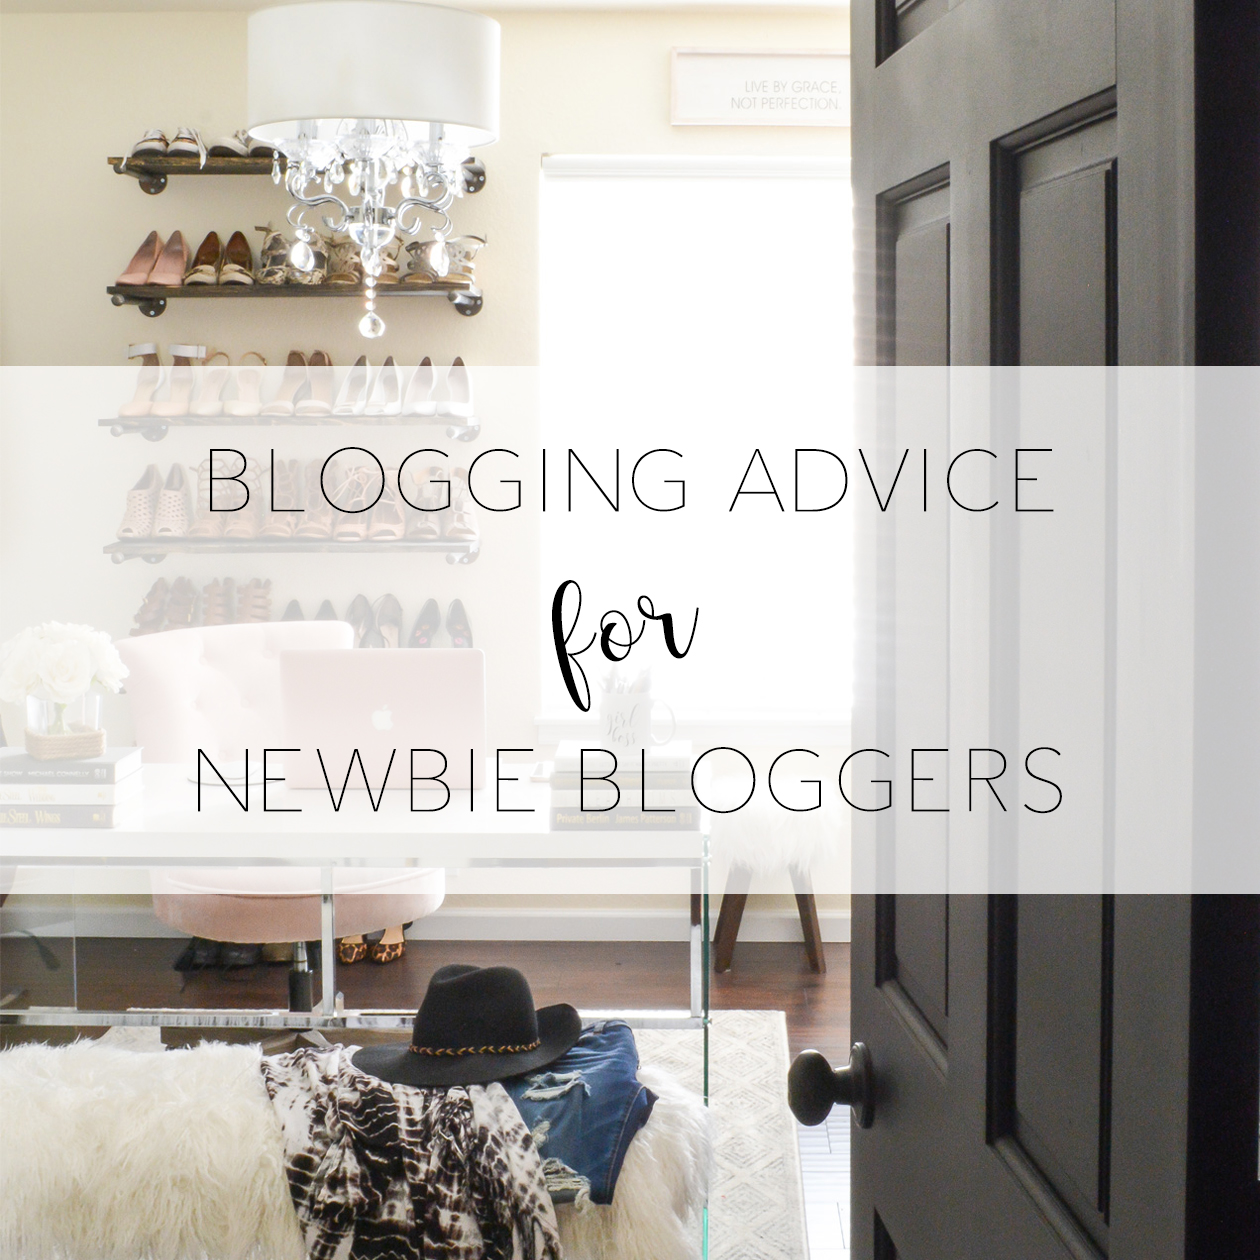 Blogging Advice for Newbie Bloggers